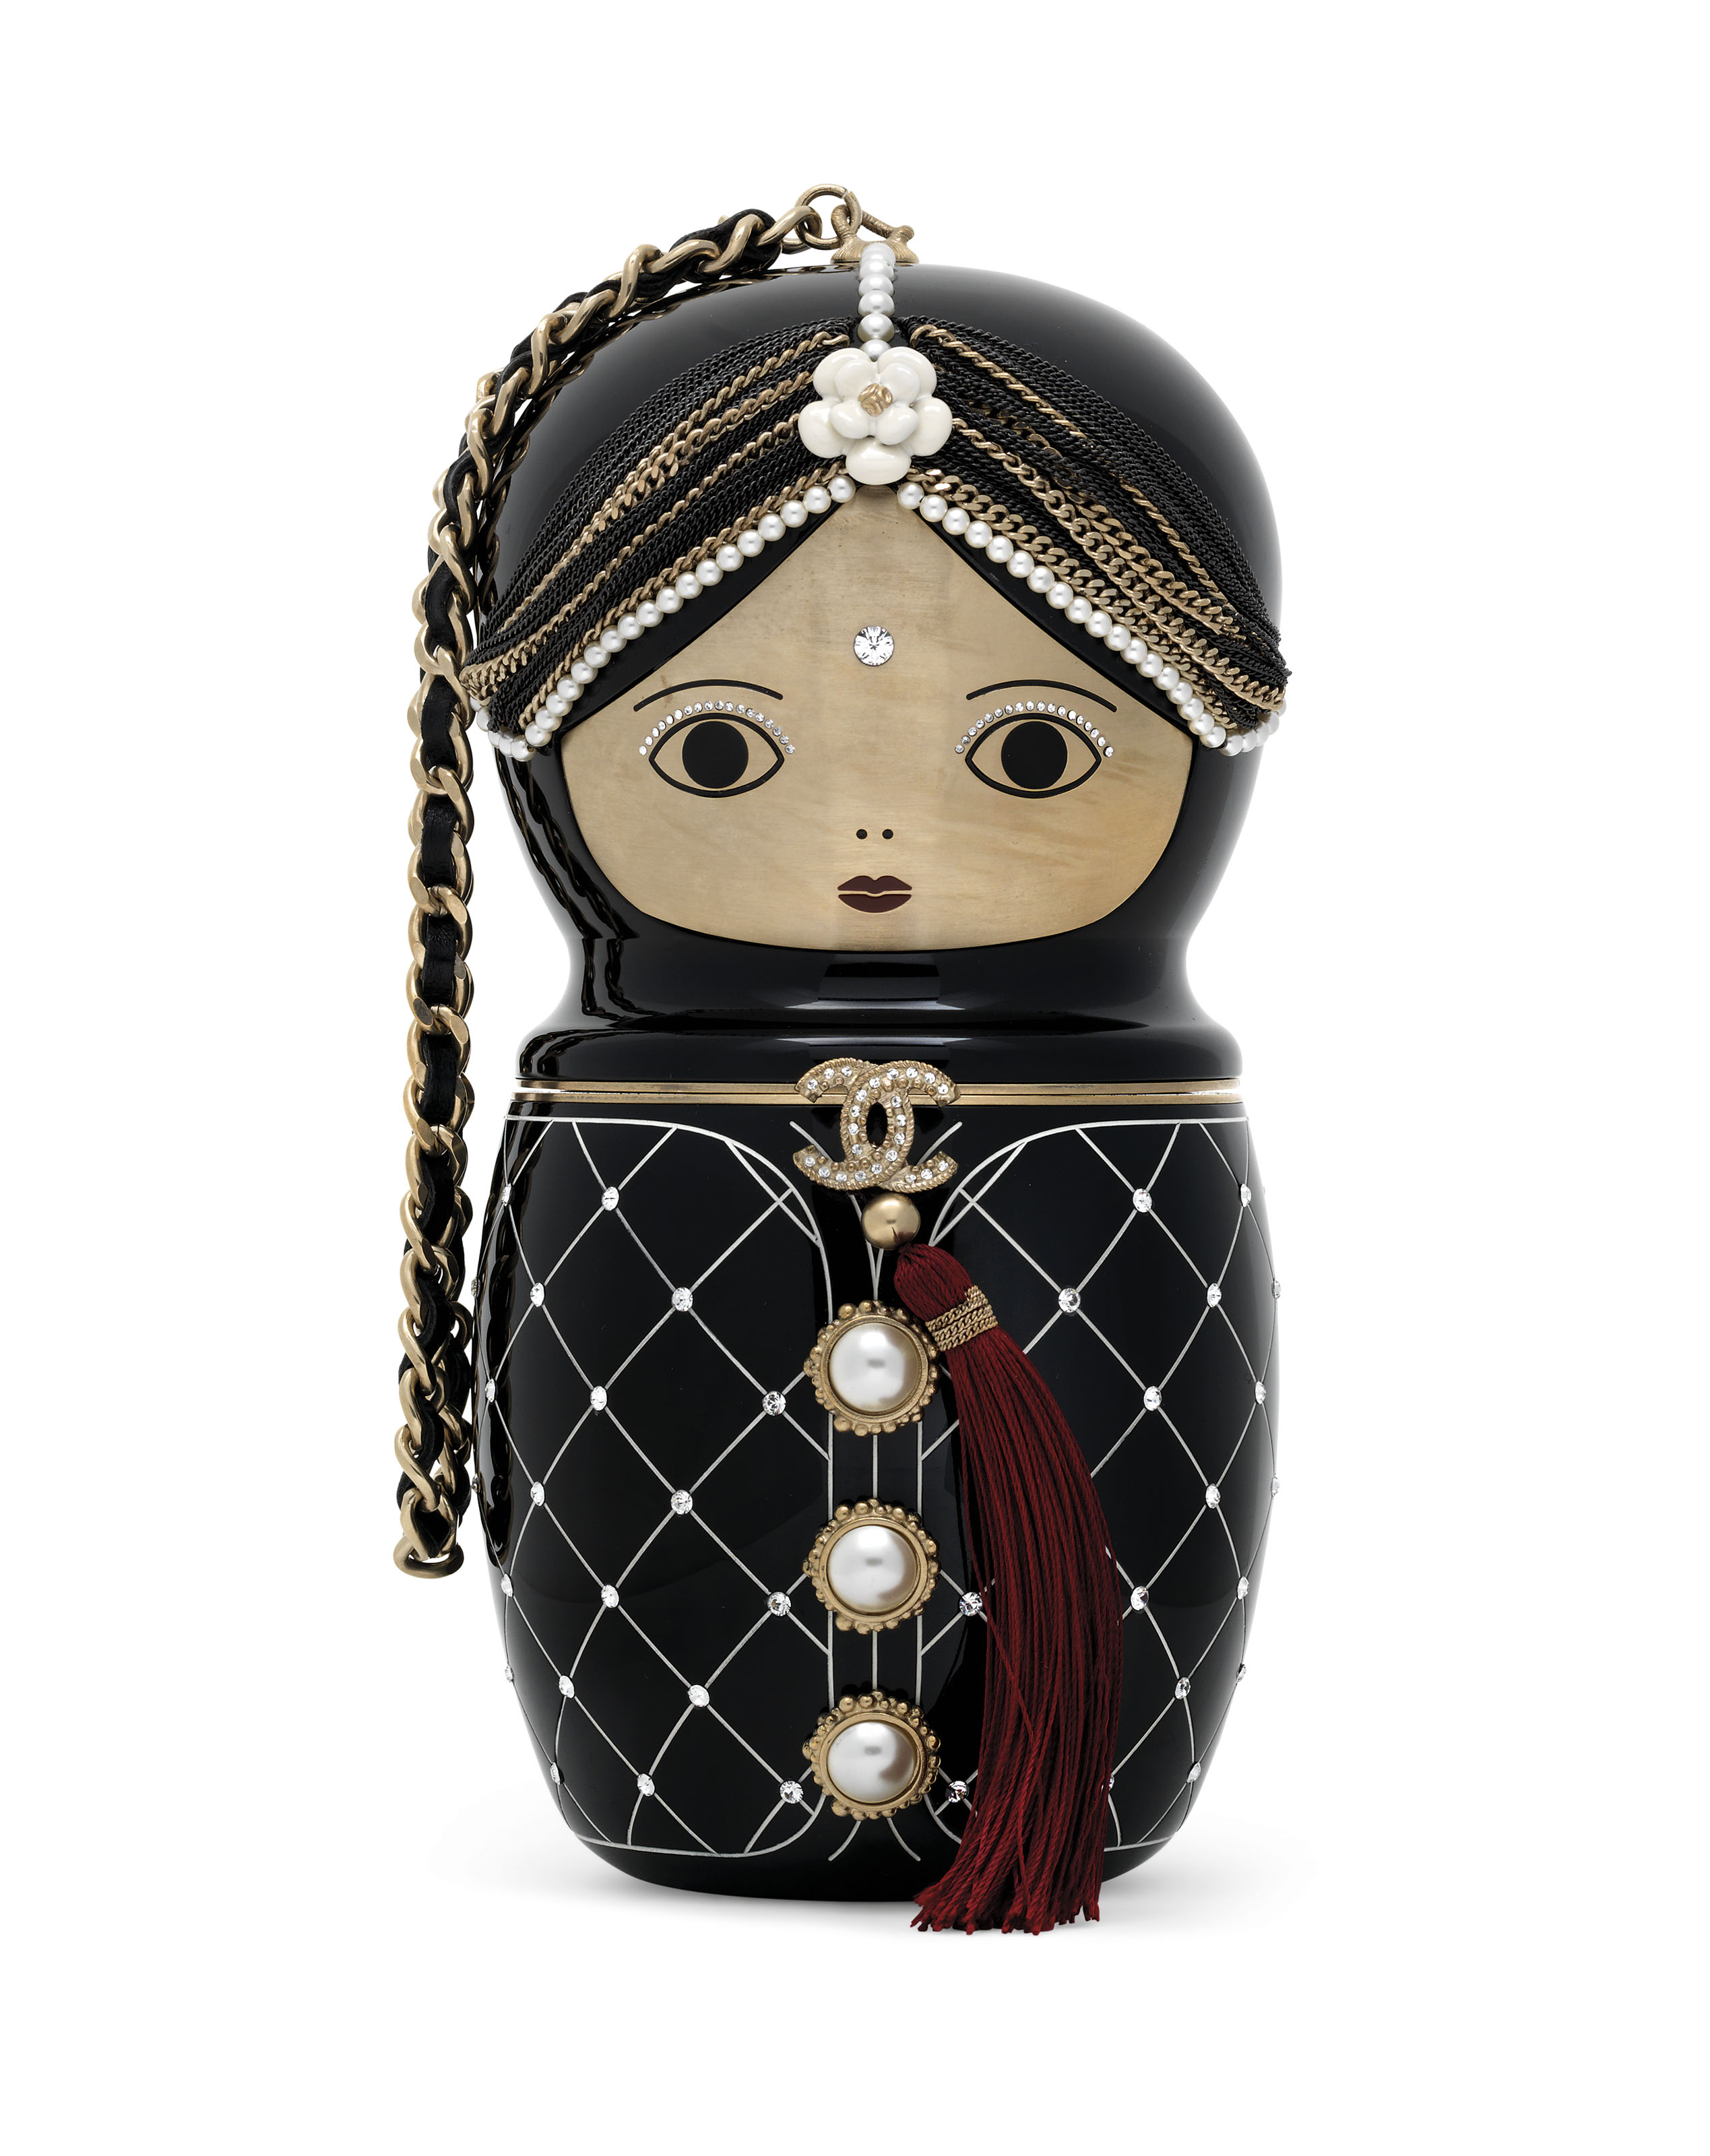 A MÉTIERS D'ART PARIS-BOMBAY RUNWAY BLACK LUCITE MATRYOSHKA EVENING BAG WITH GOLD HARDWARE